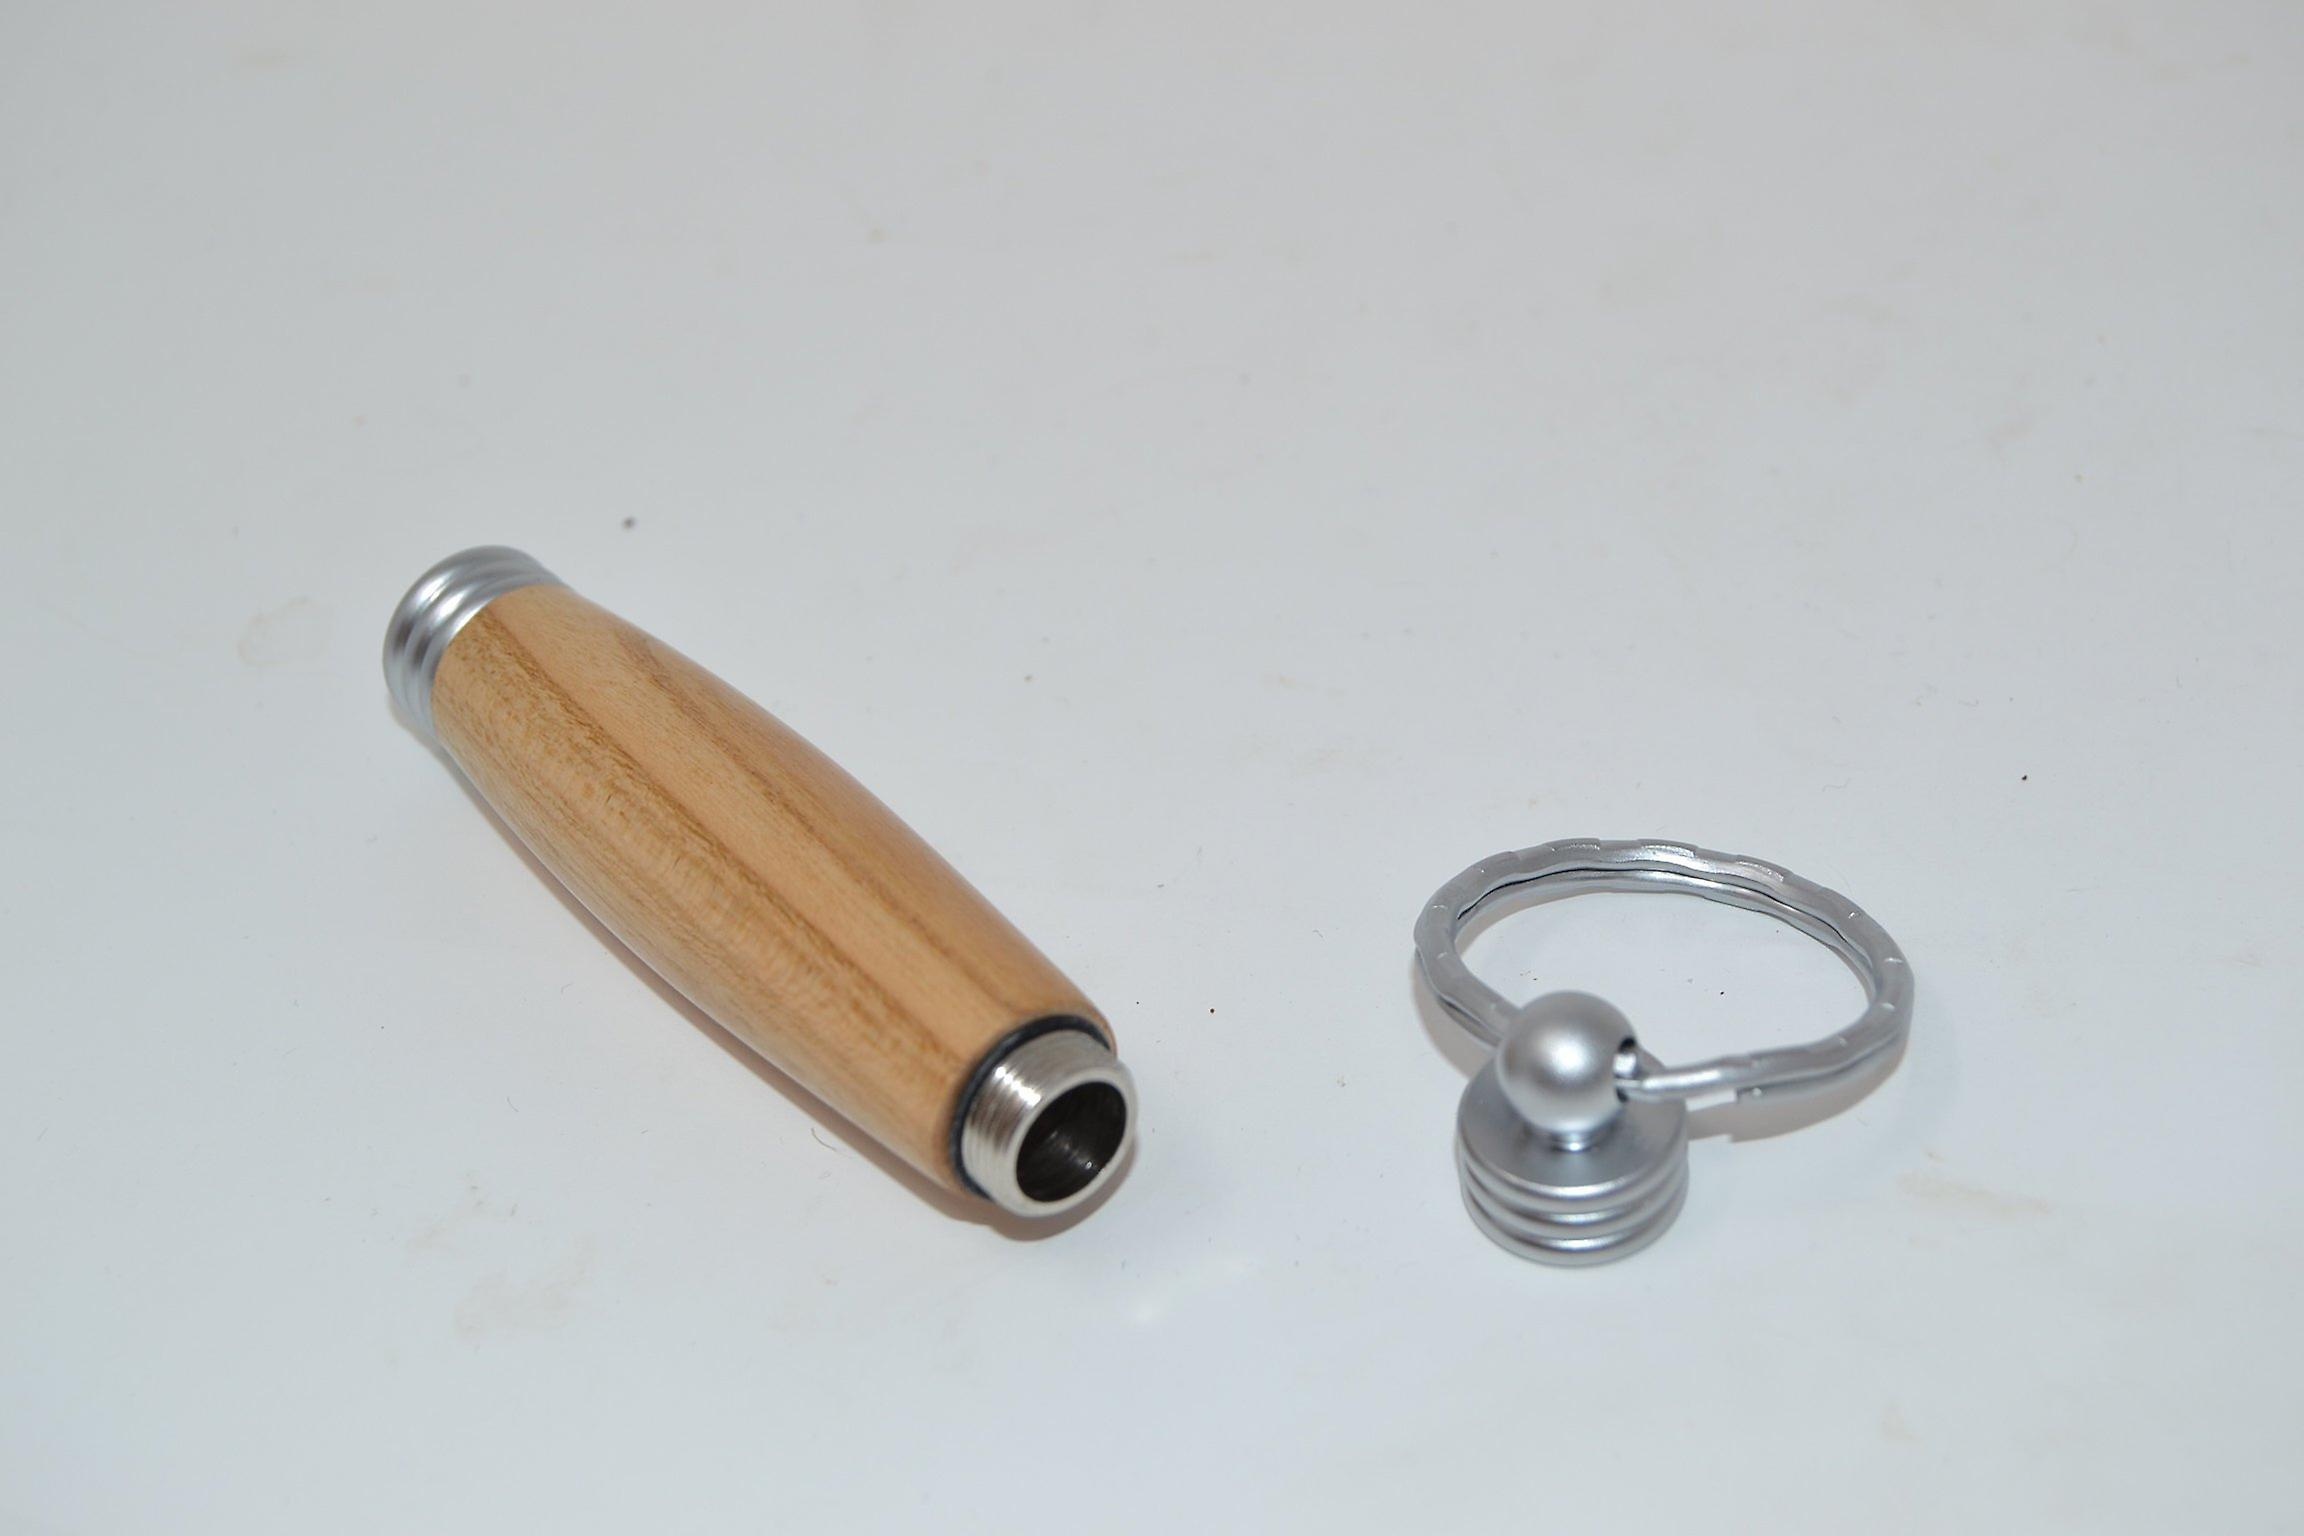 Wood Cherry with a secret compartment handmade Keychain key chain made of wood made in Austria